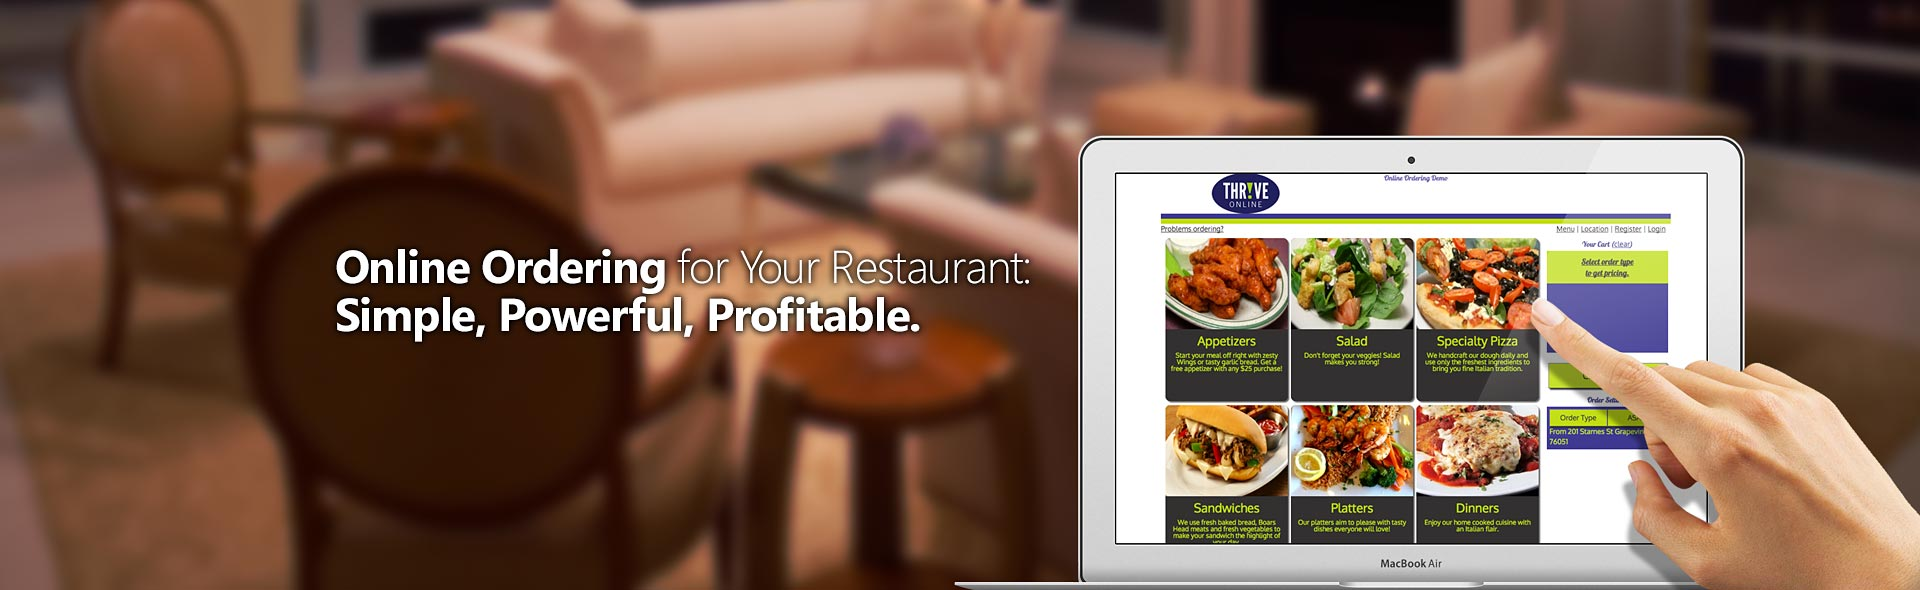 Thrive online ordering point of sale for Restaurants